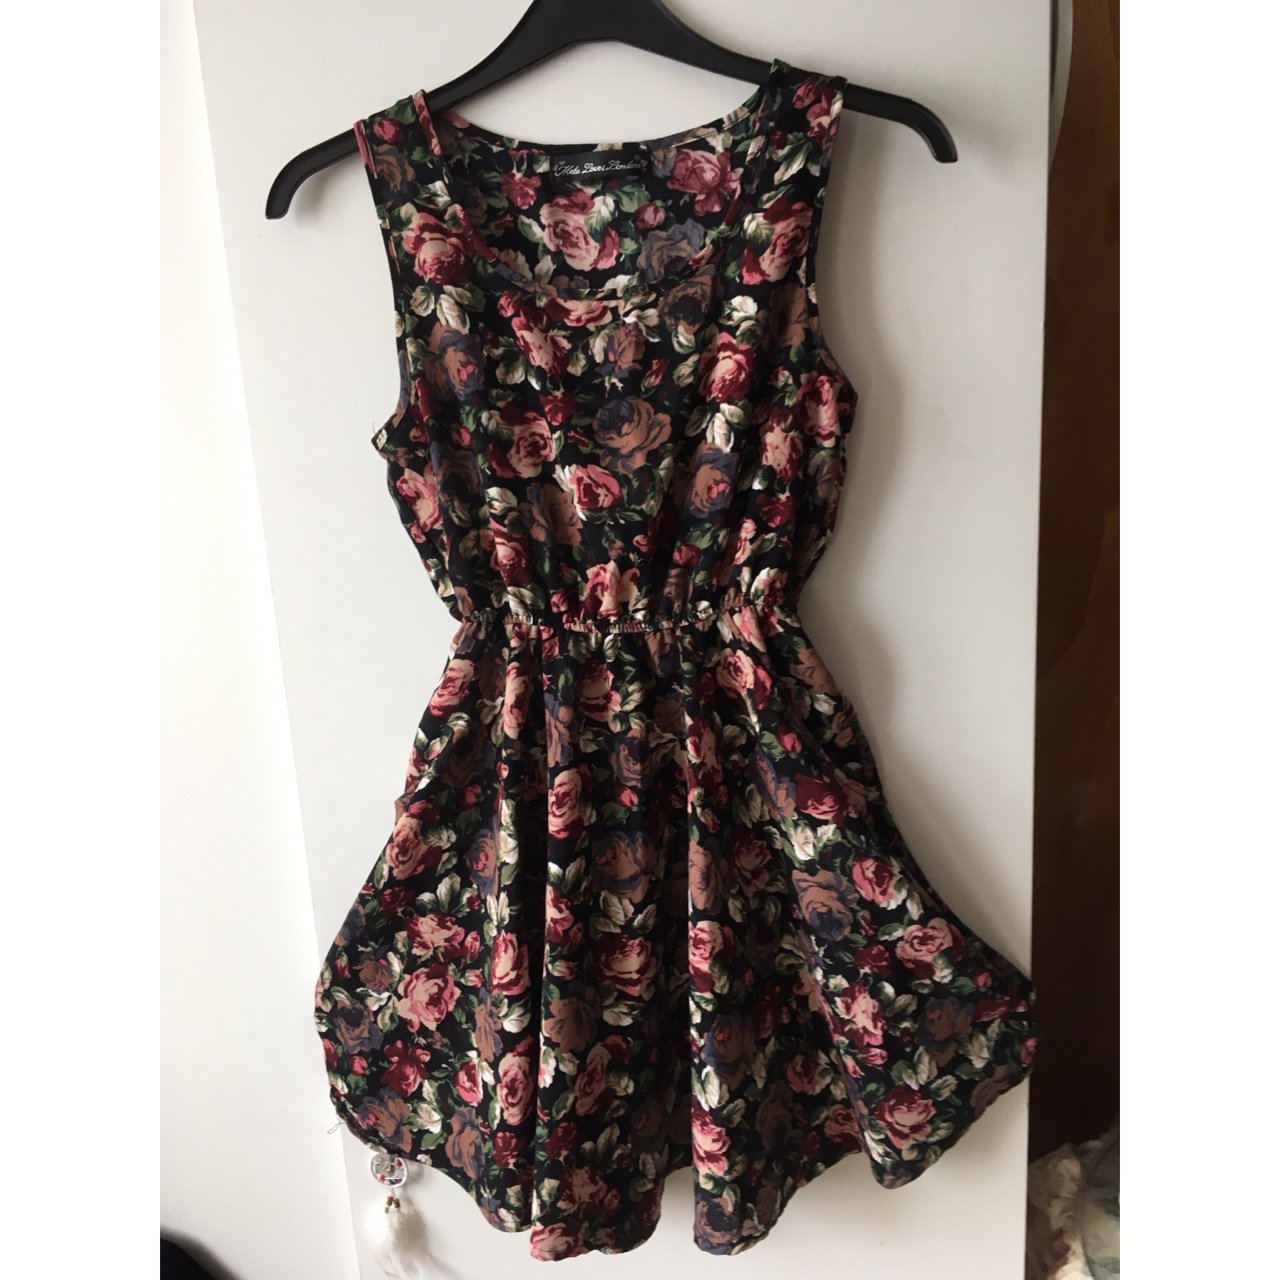 62bd7474be54 Floral dress size 10 with pockets elastic waistband perfect - Depop